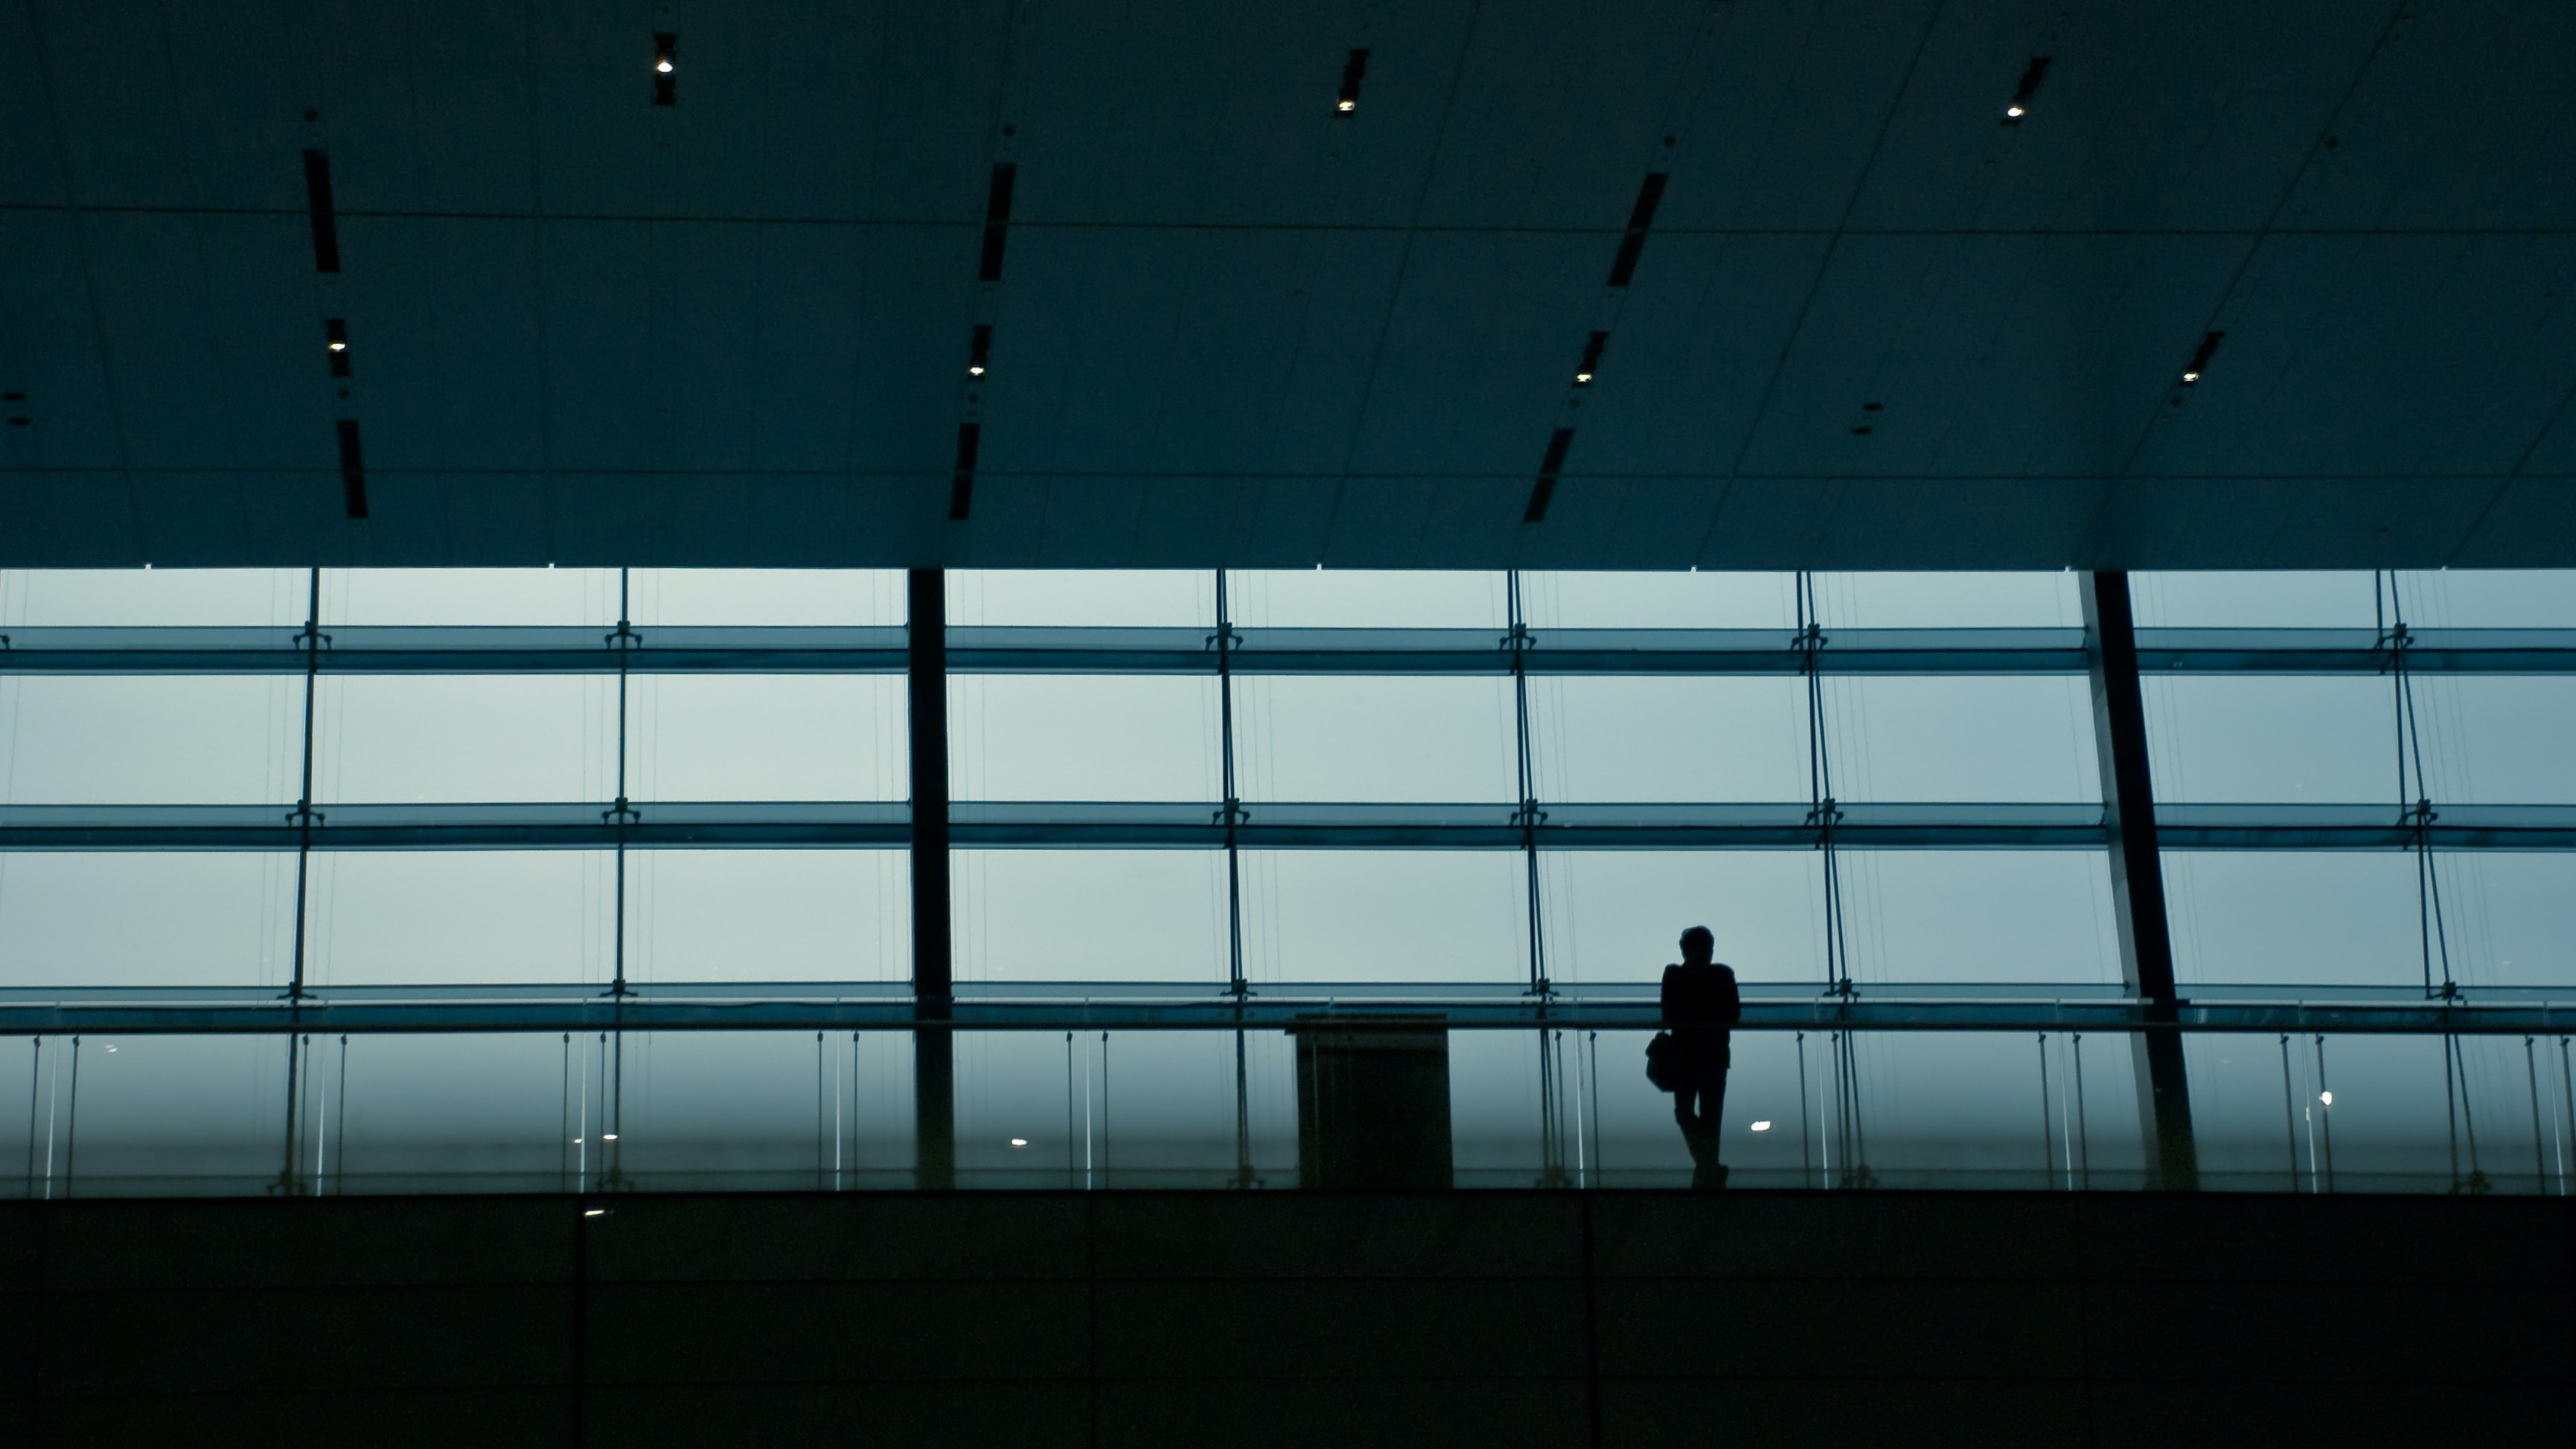 A silhouette of a person in a dark railway terminal